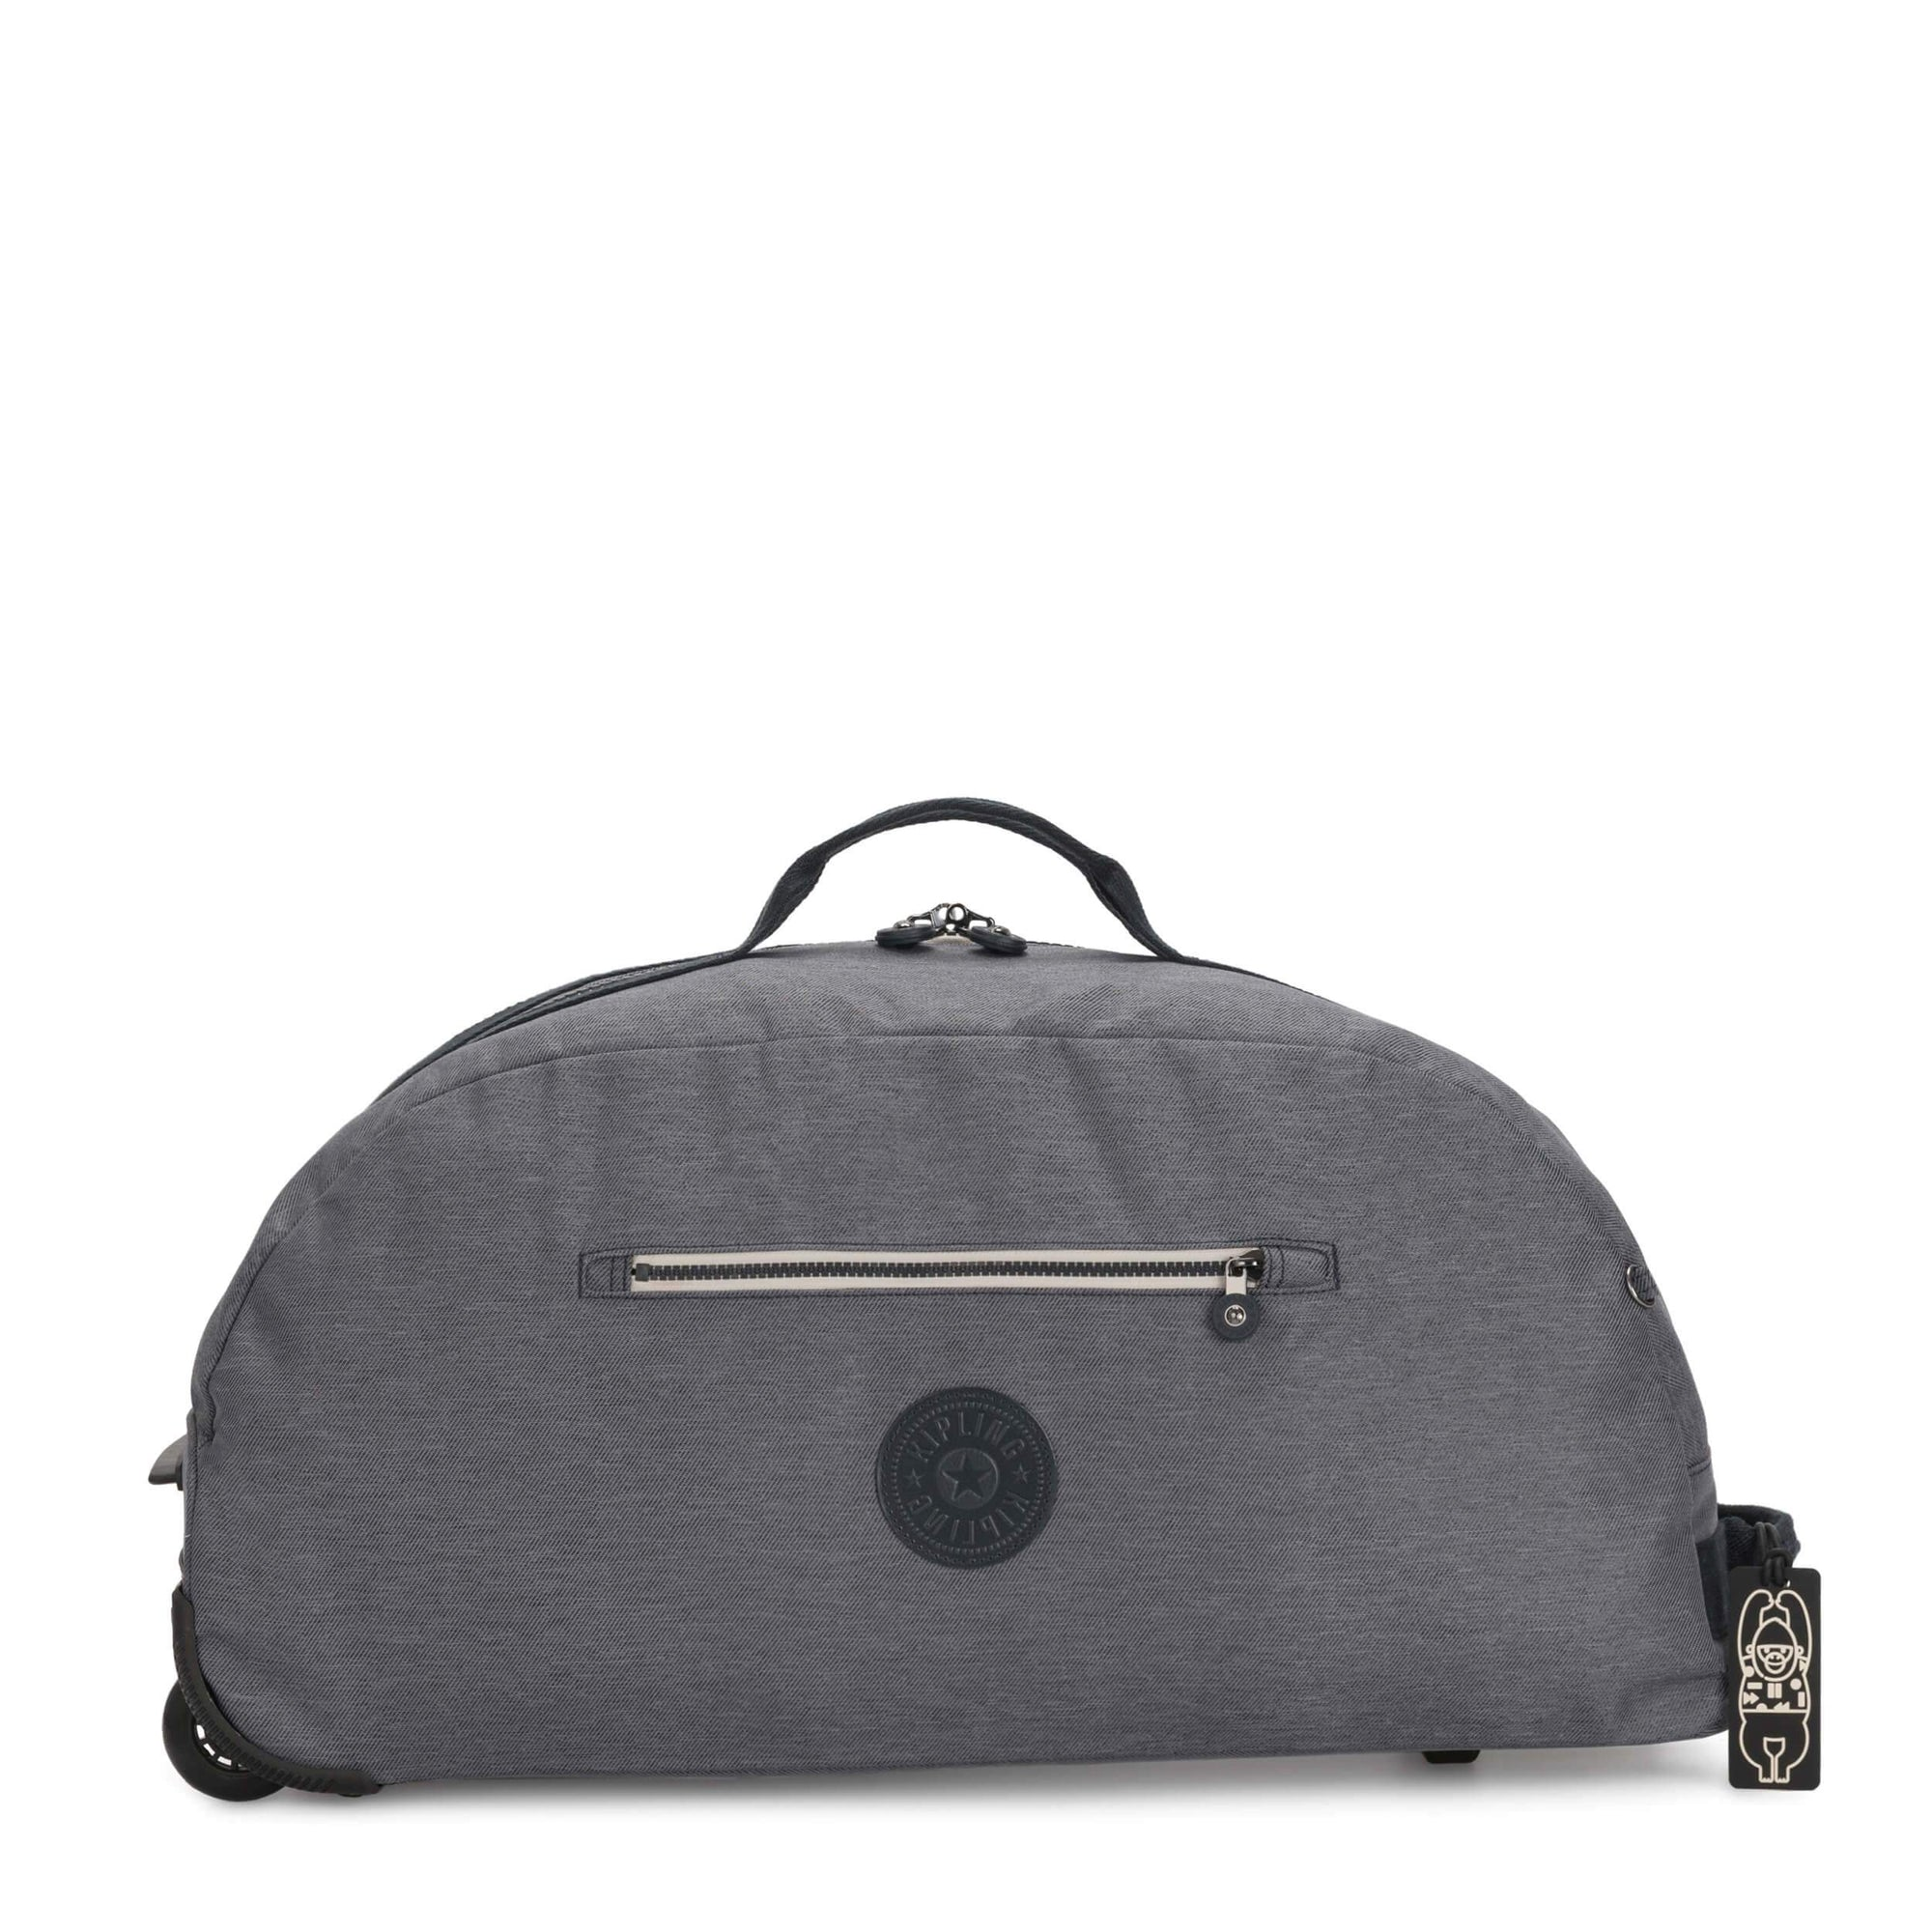 Maleta Kipling Devin On Wheels Charcoal KI431429V